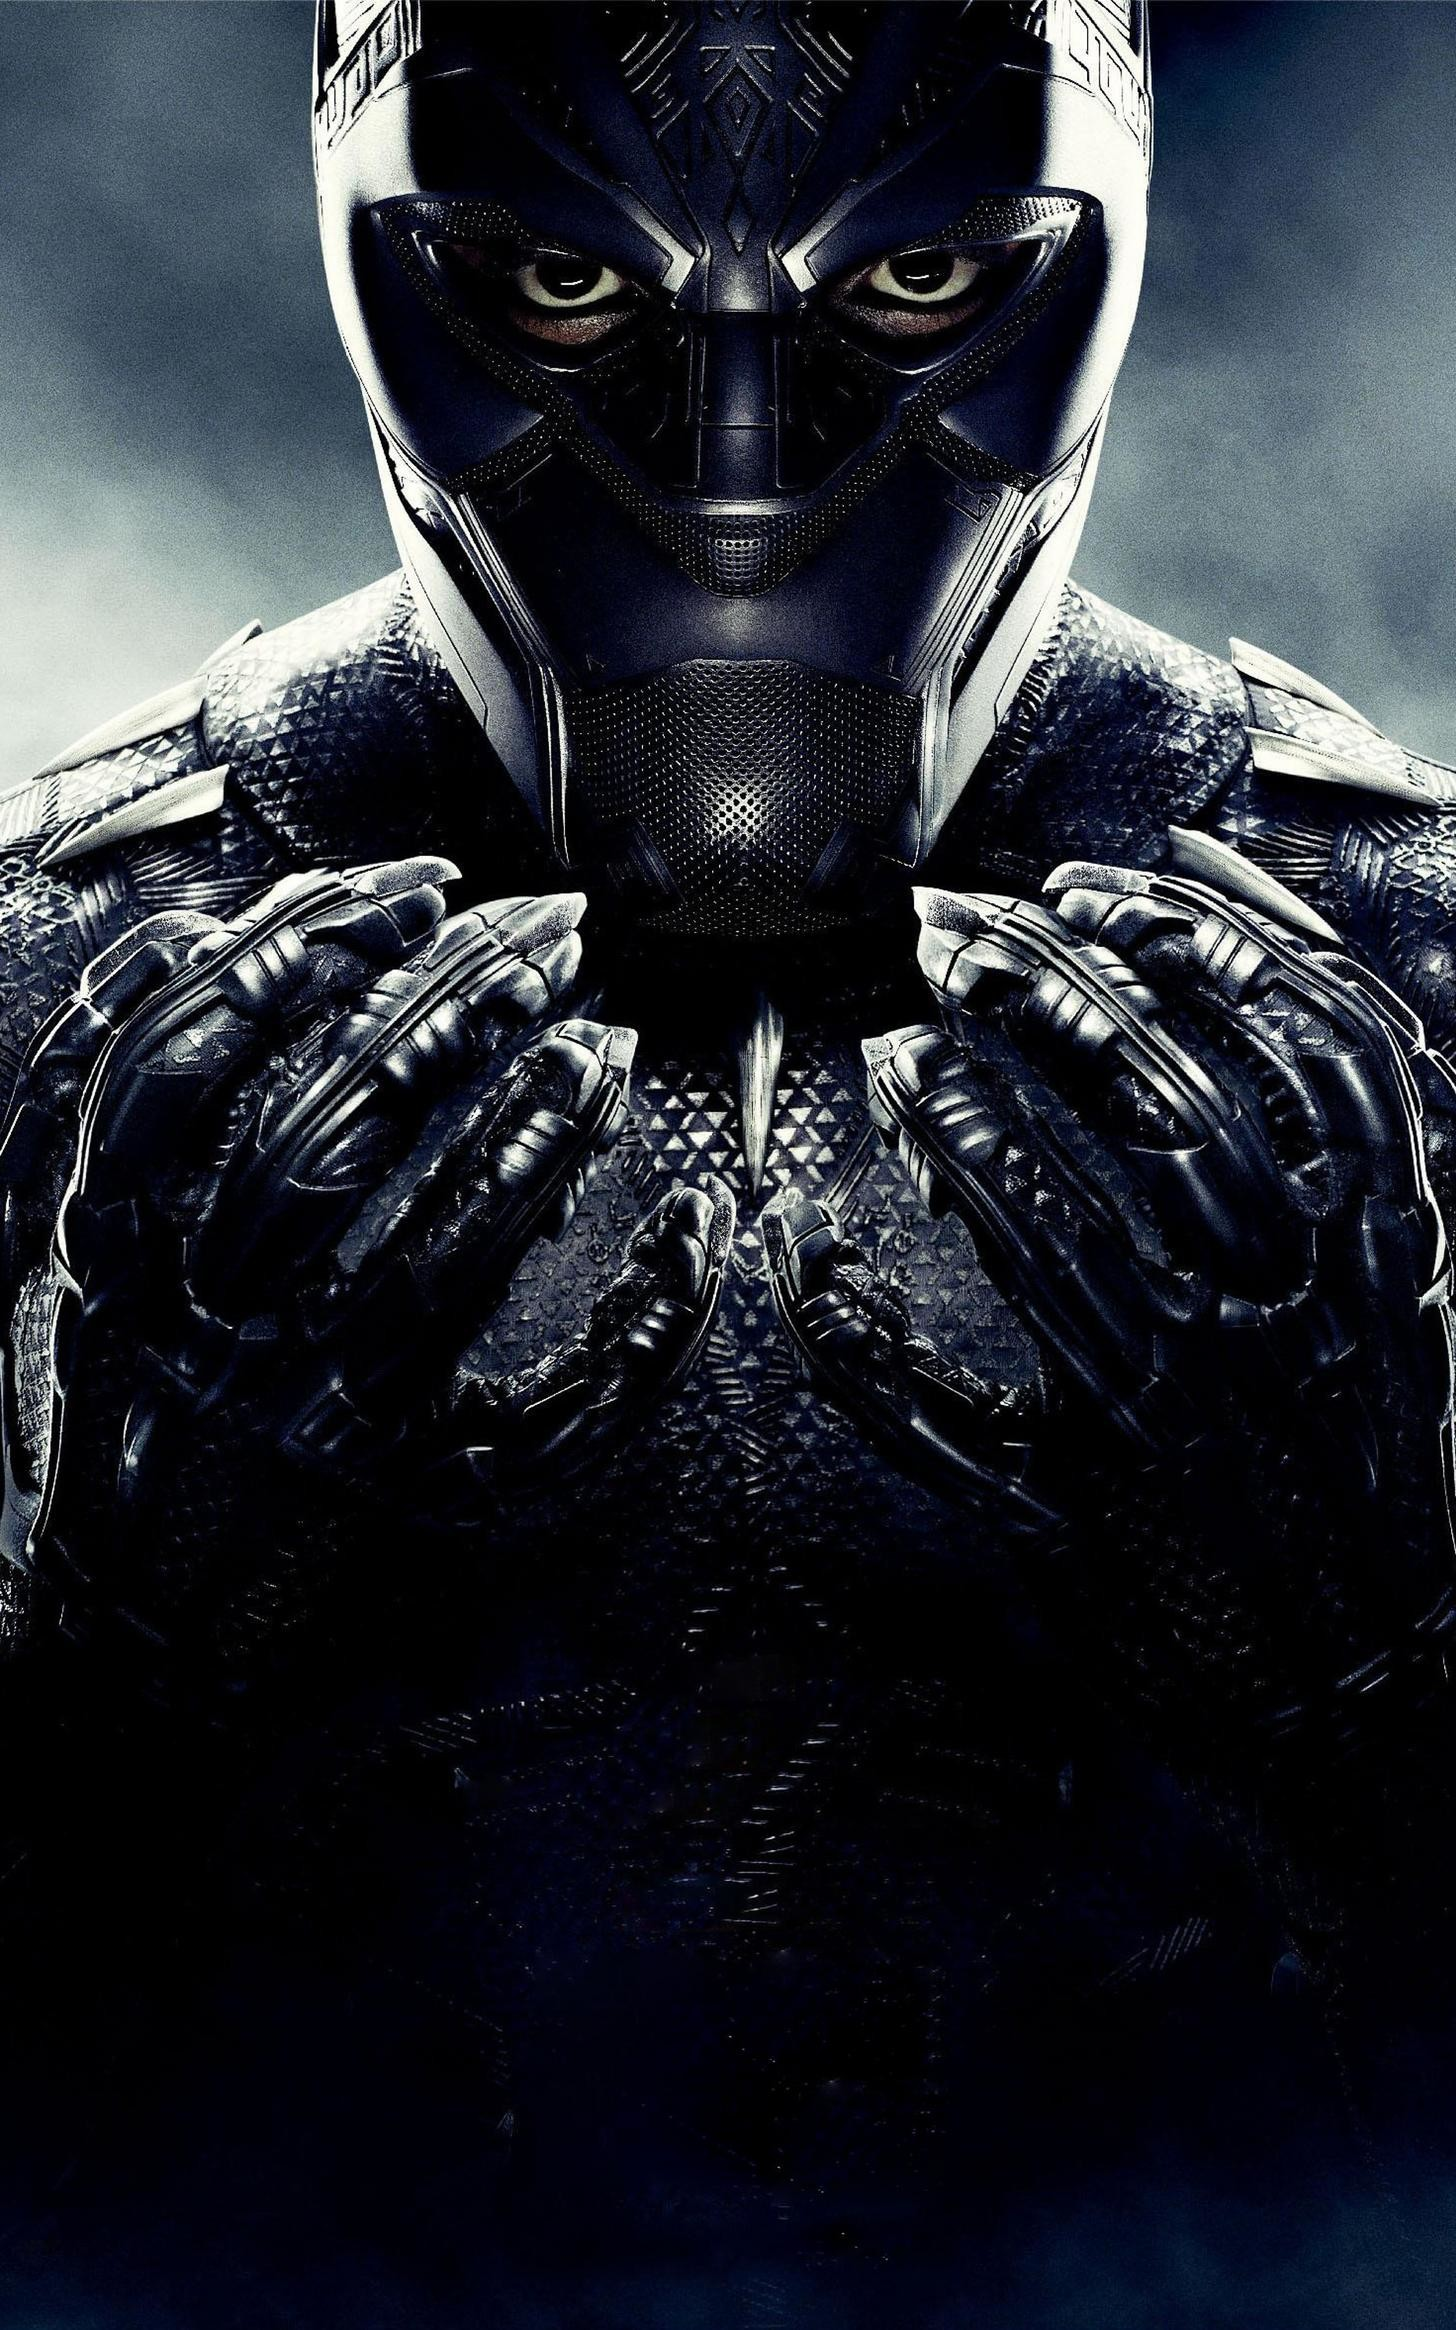 1456x2330 Black Panther https://imgur.com/AFiJNhX [February 09th]  https://youtu.be/xjDjIWPwcPU 1st Marvel film!